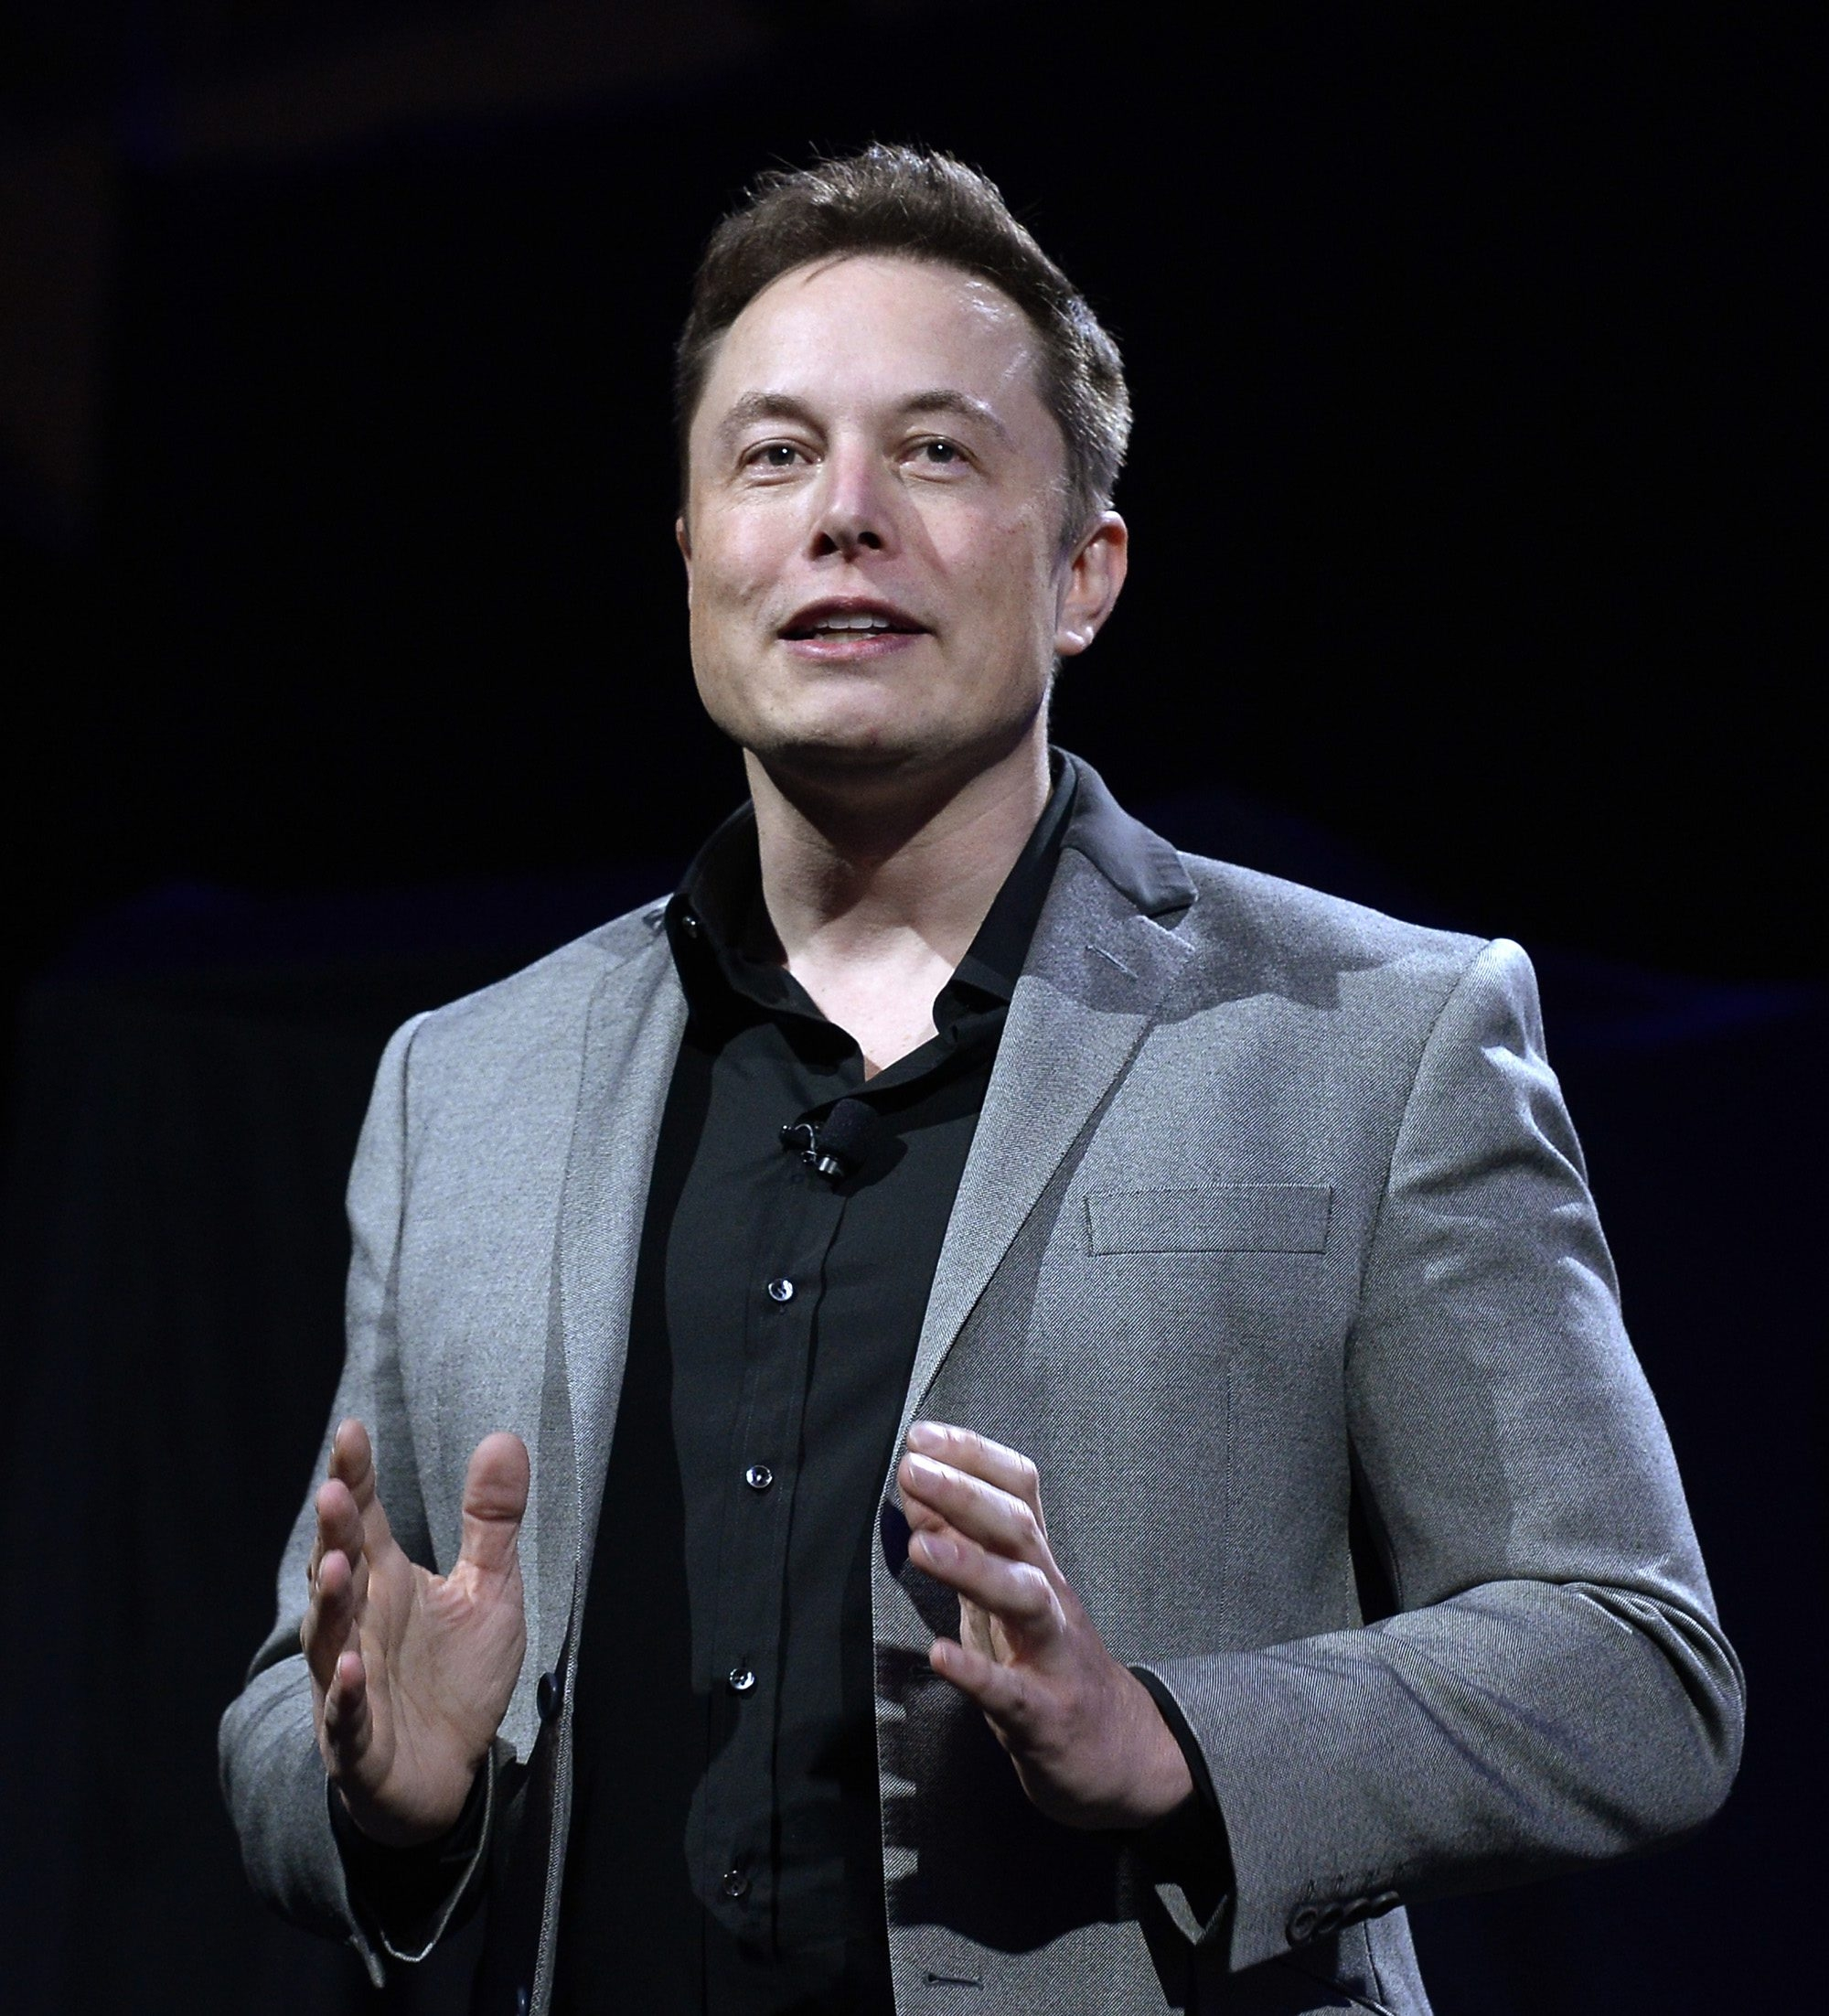 Public-private financing aids Elon Musk as head of Tesla, SolarCity, SpaceX.